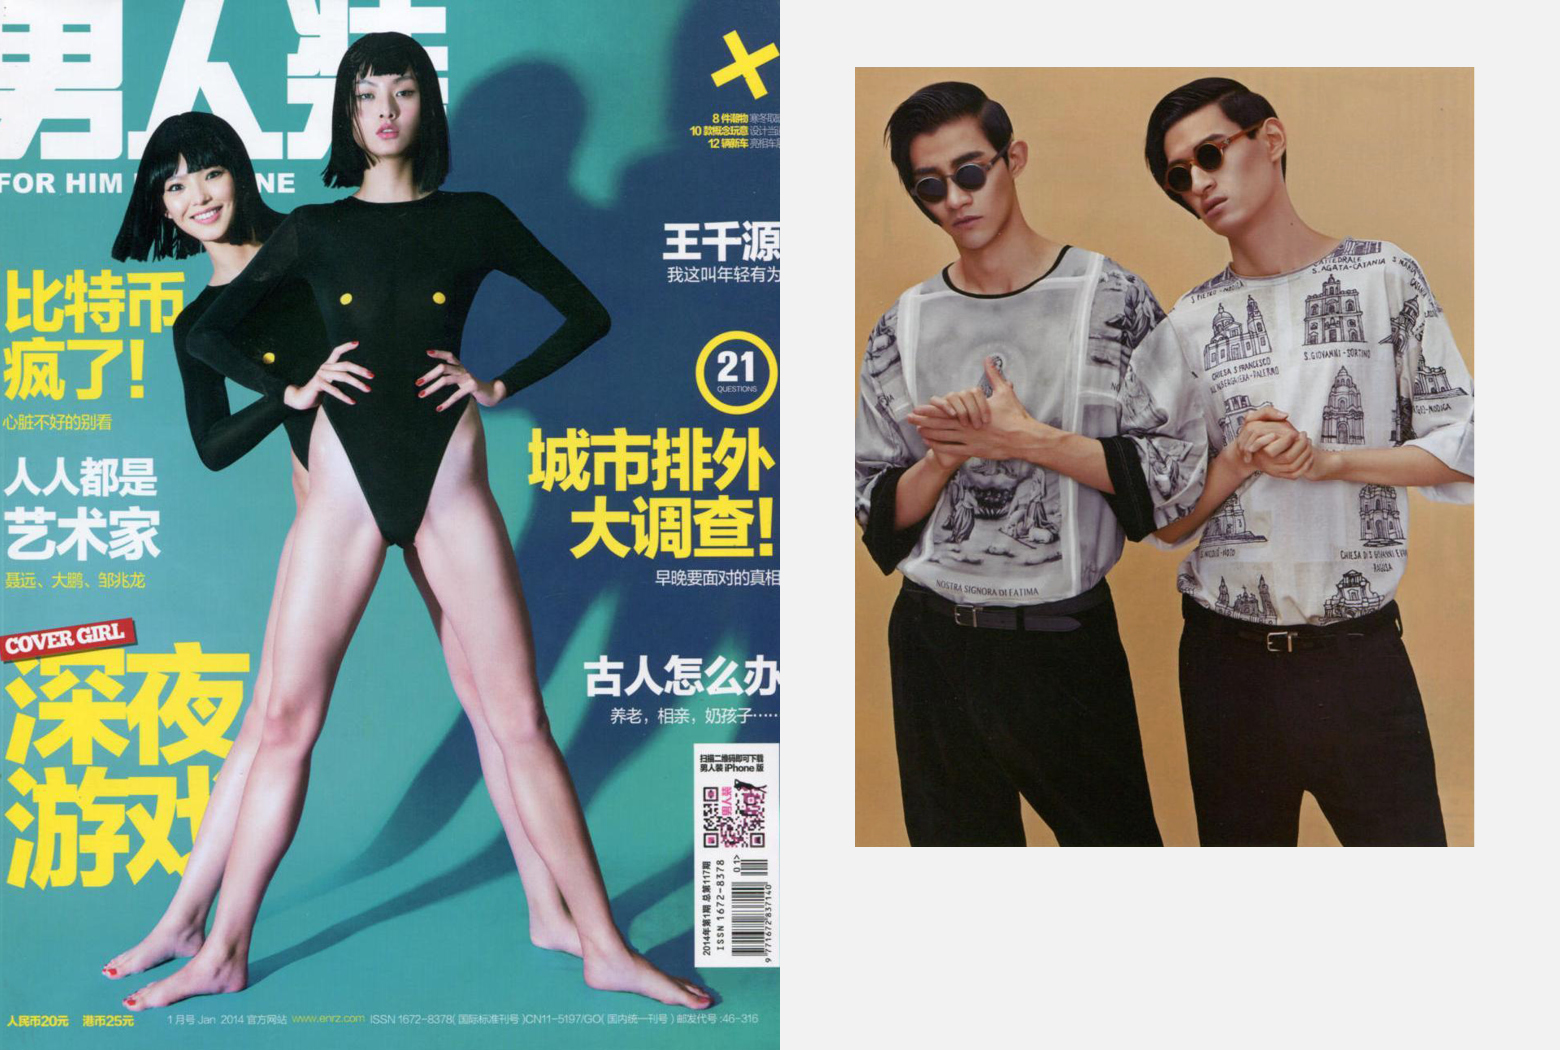 MYKITA Clipping Fhm China